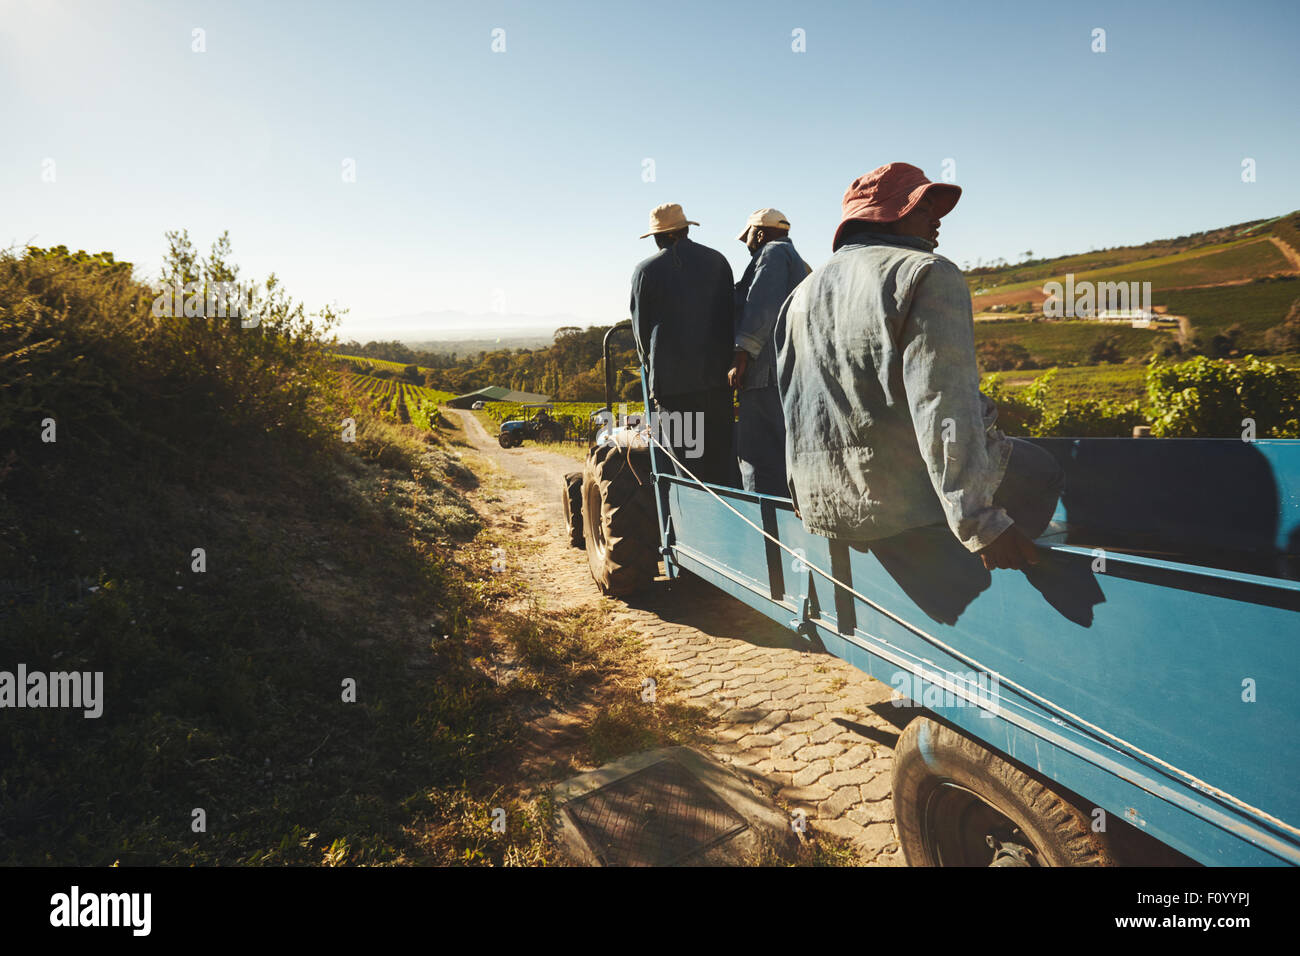 Shot of vineyard workers in tractor wagon transporting grapes to wine factory. Group of grape farmers in tractor - Stock Image